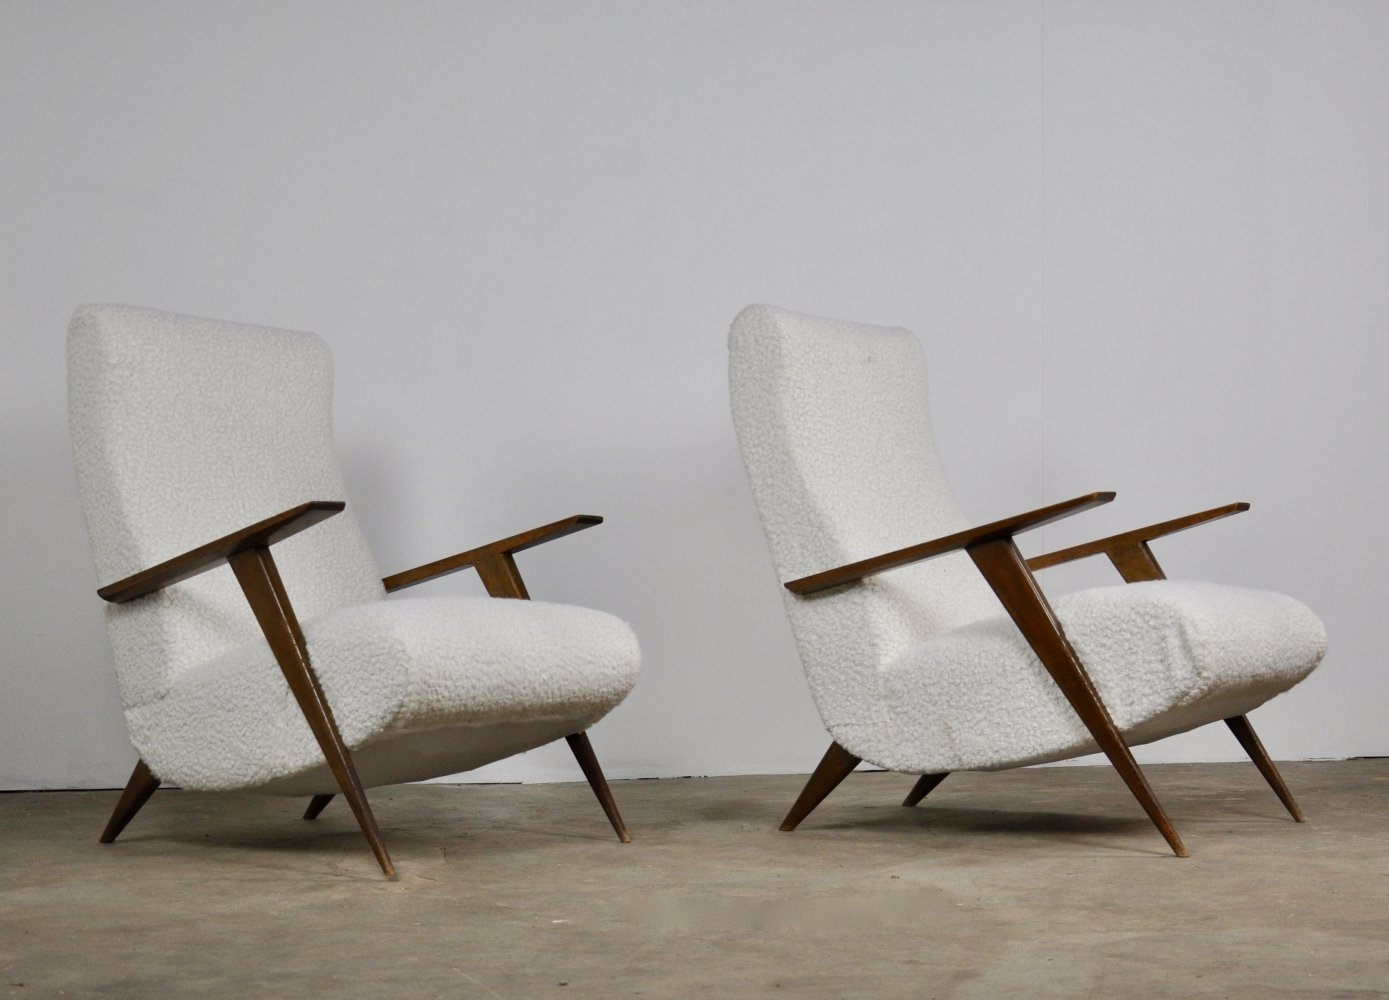 Pair of Italian Lounge chairs, 1950s